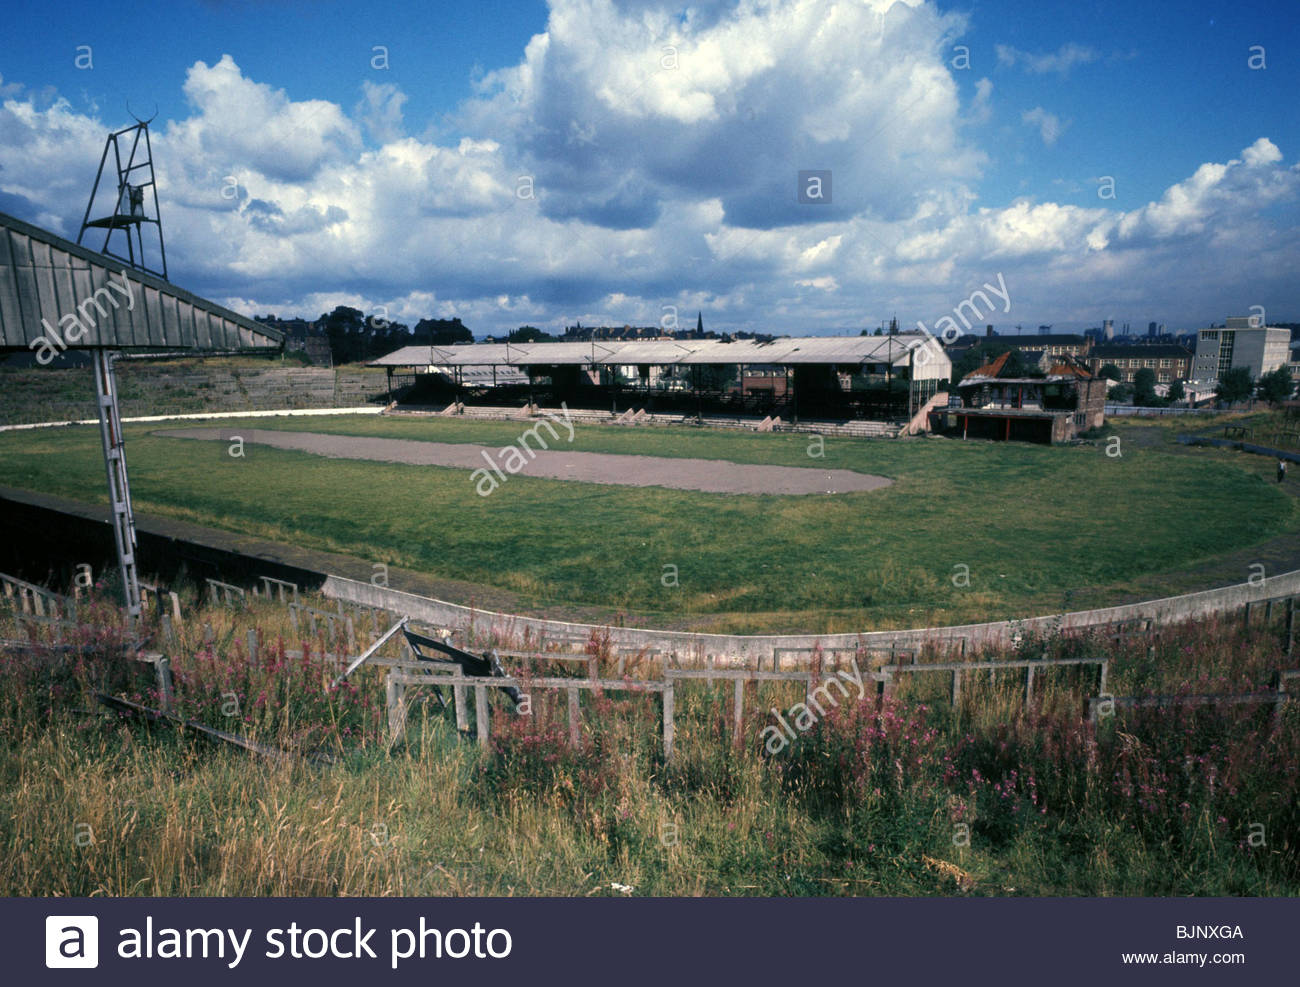 SEASON 1972/1973 Cathkin Park, the former ground of Third Lanark who went into extinction in 1967. - Stock Image